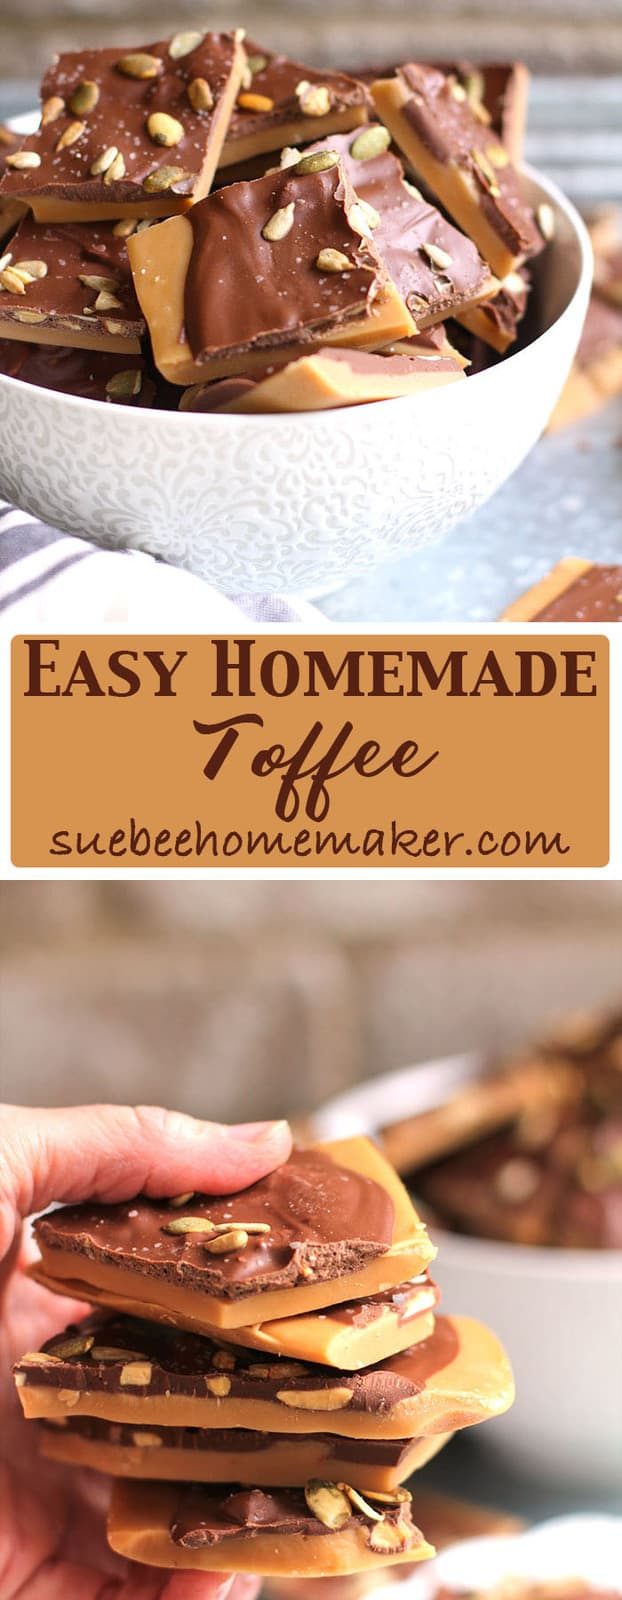 Easy Homemade Toffee is the ultimate holiday treat and reminds me of my mom, who made this every year. Only eight ingredients and patience necessary! | suebeehomemaker.com